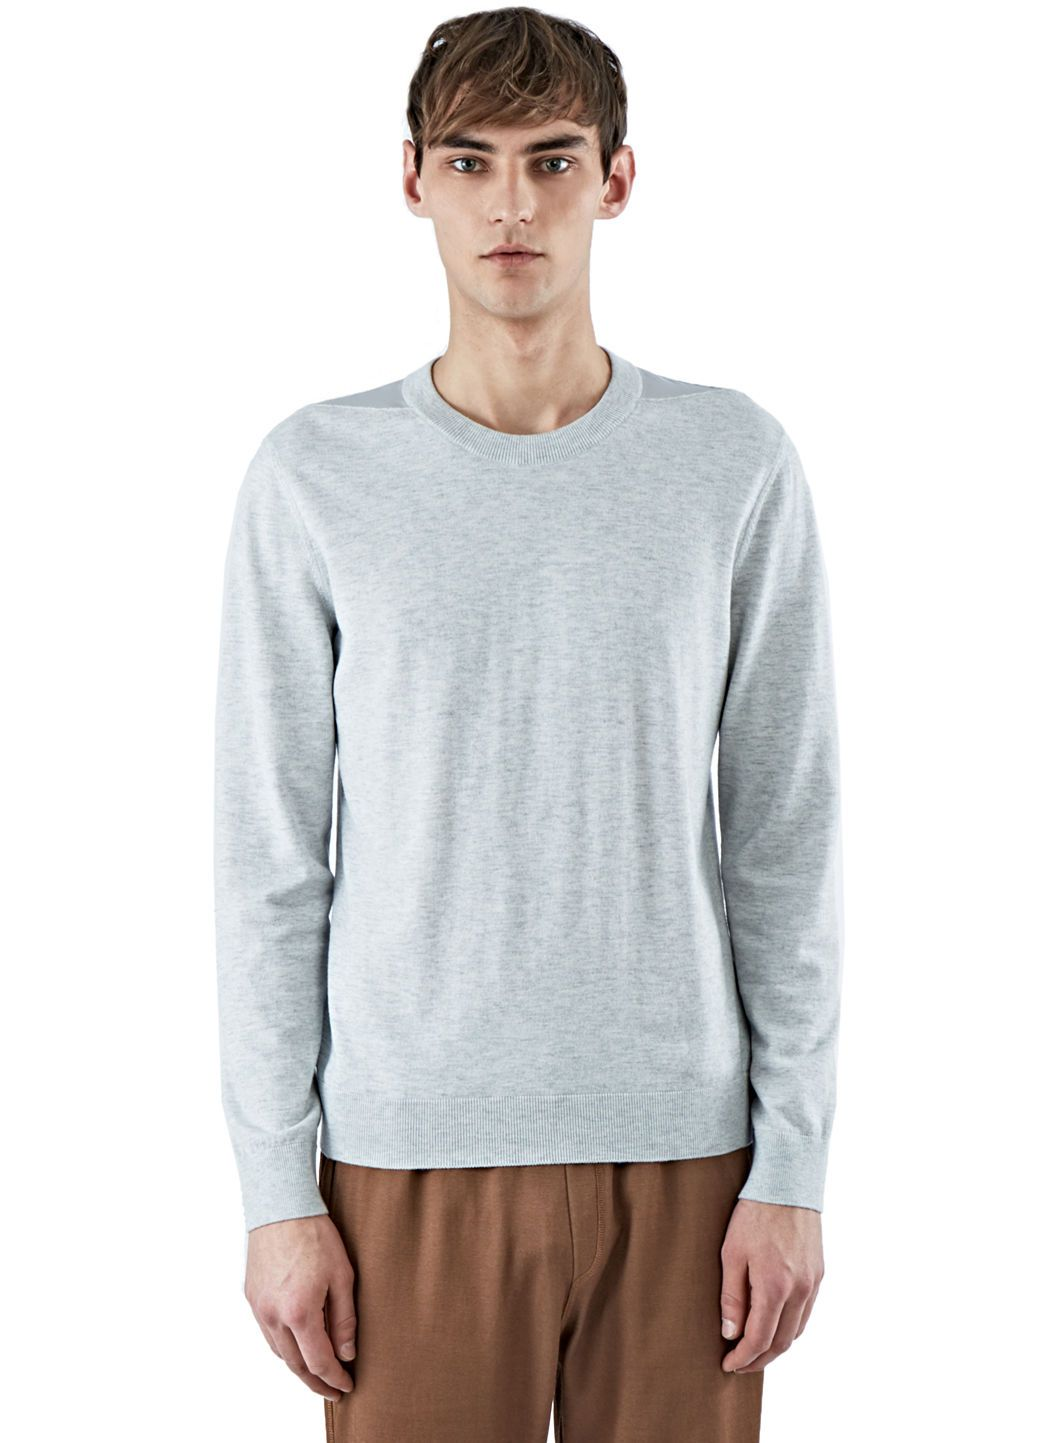 348ad6028355 LANVIN Men S Jersey Crew Neck Sweater With Shoulder Detail In Grey.  lanvin   cloth